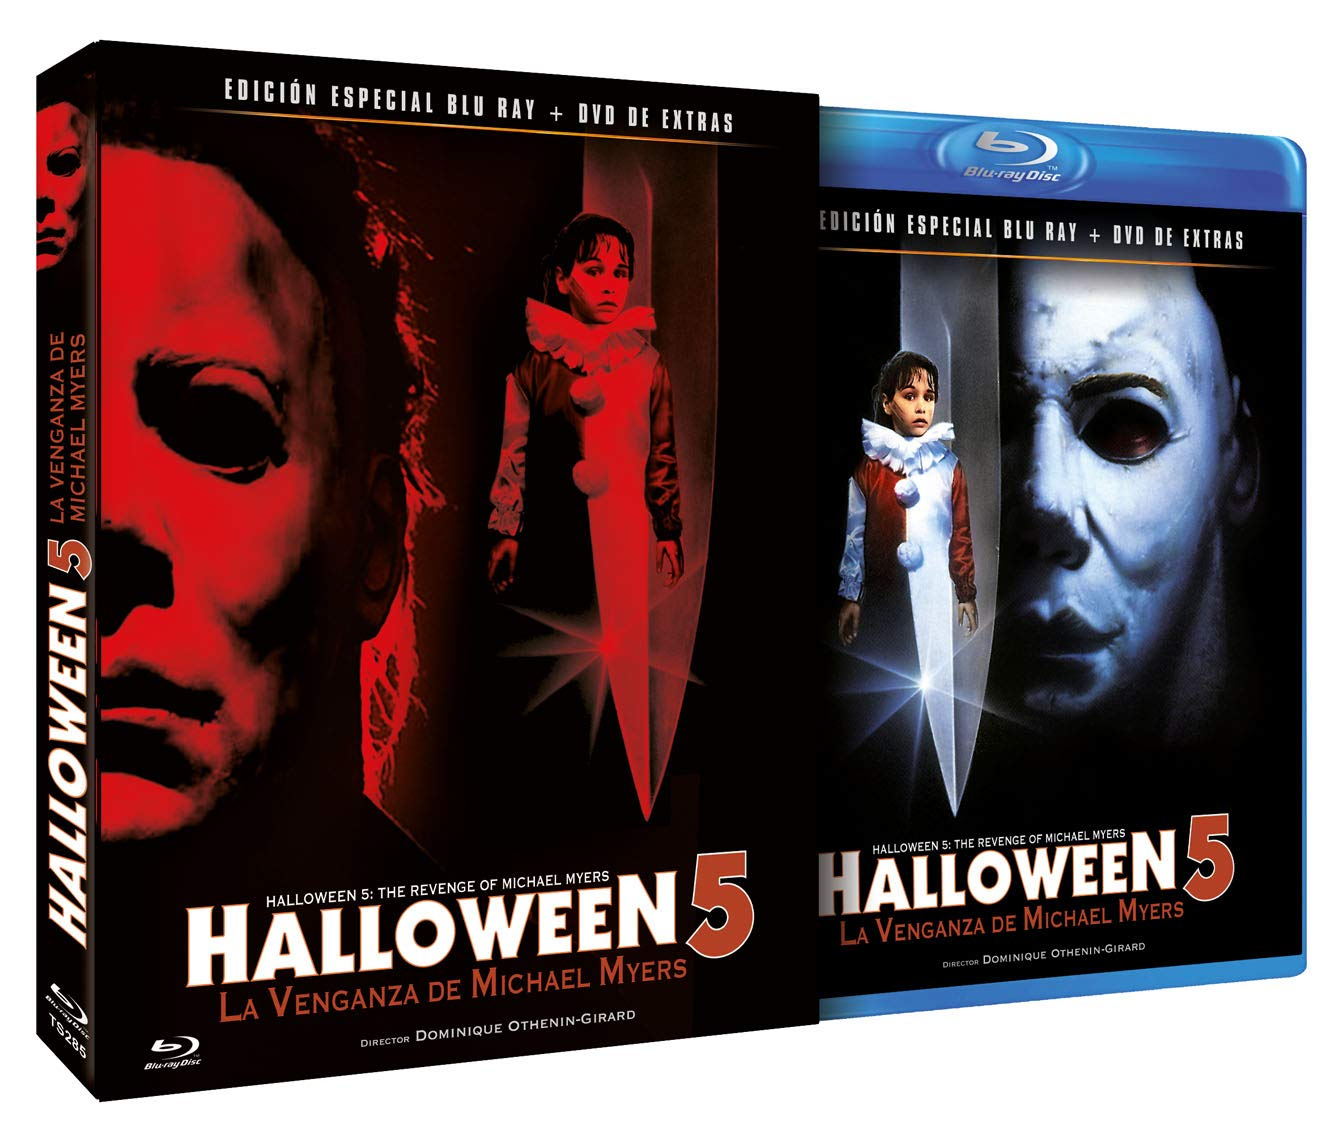 Halloween 5 Blu Ray.Halloween 5 The Revenge Of Michael Myers Spanish Release Include